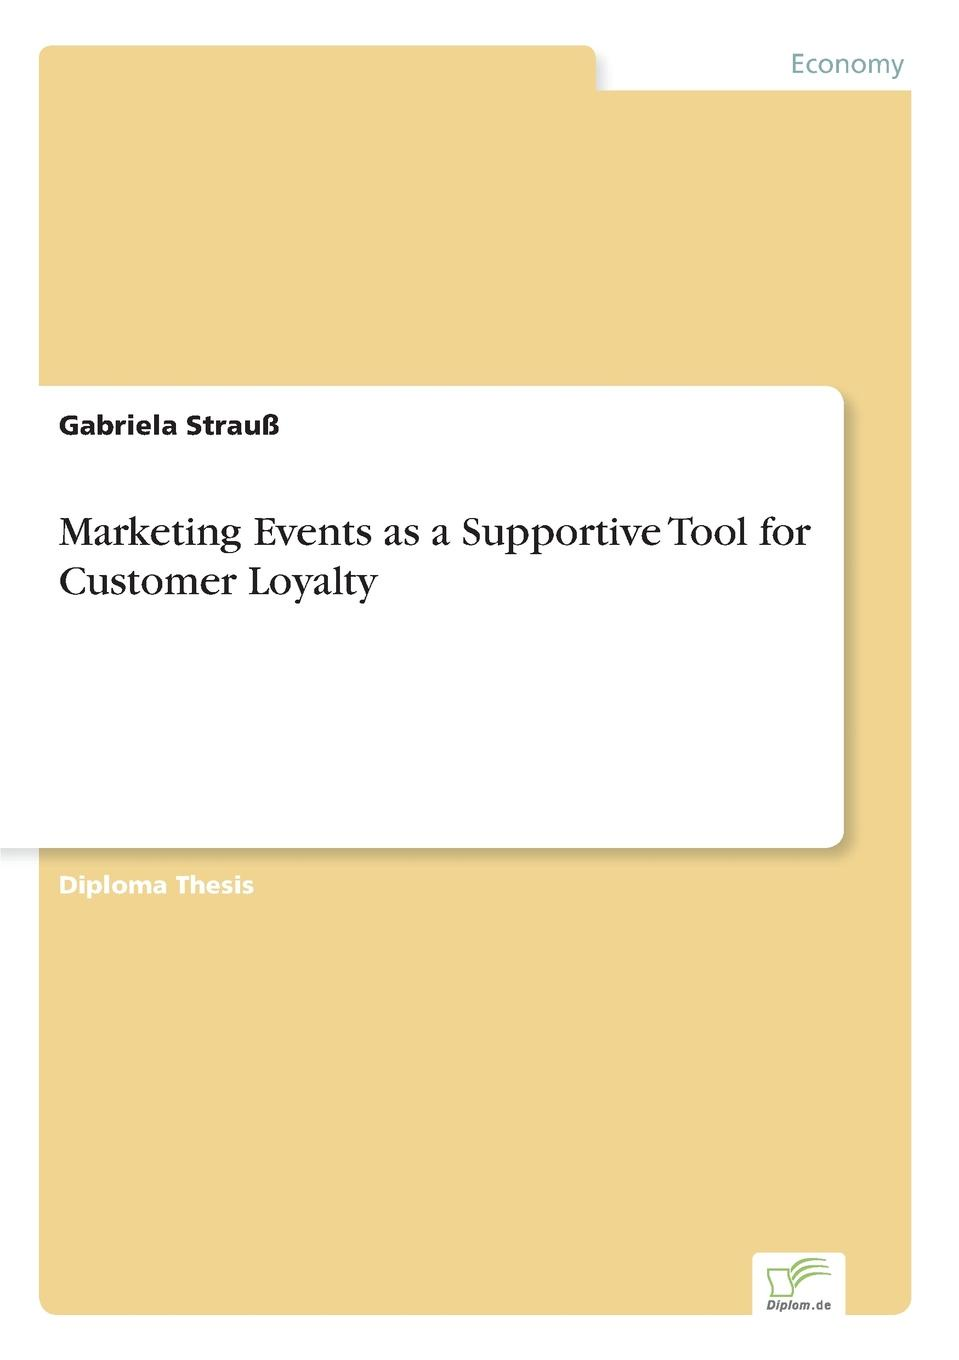 Gabriela Strauß Marketing Events as a Supportive Tool for Customer Loyalty andrew frawley igniting customer connections fire up your company s growth by multiplying customer experience and engagement